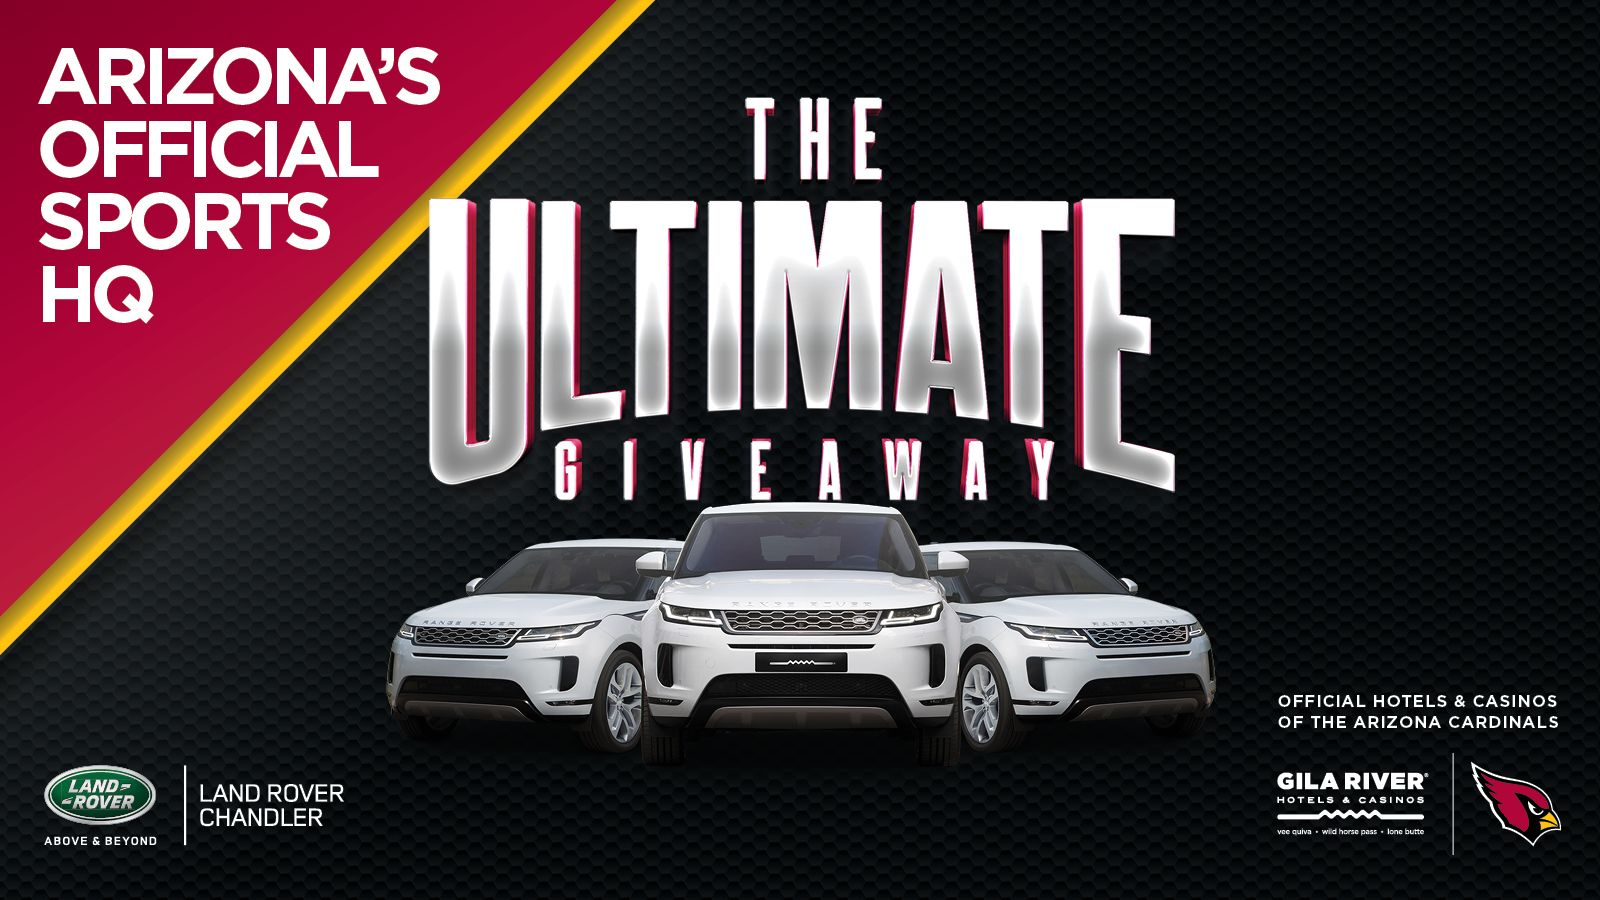 Gila River The Ultimate Giveaway Contest Promo Image